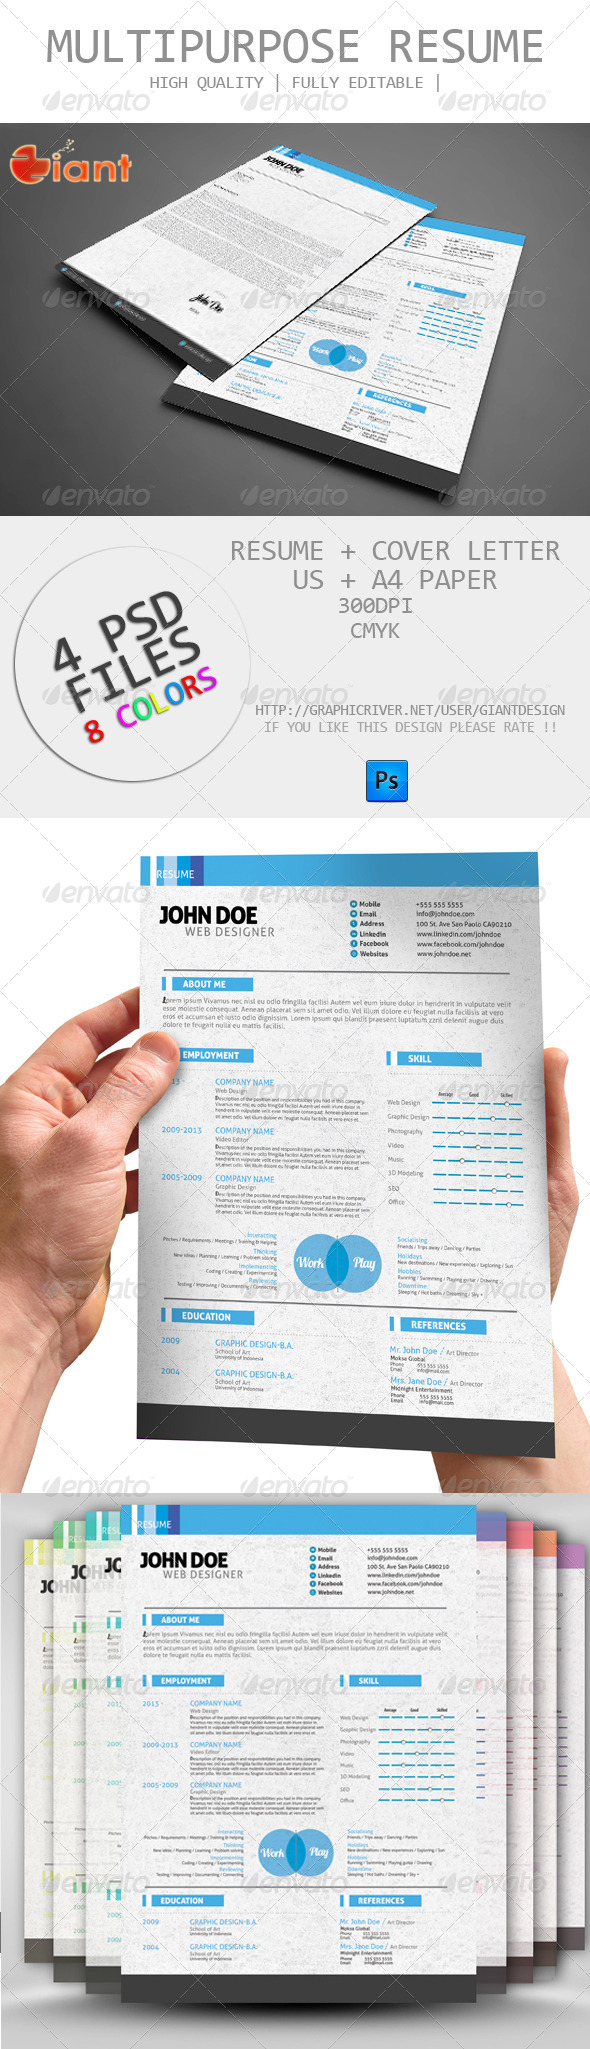 GraphicRiver Multipurpose Resume 6067926